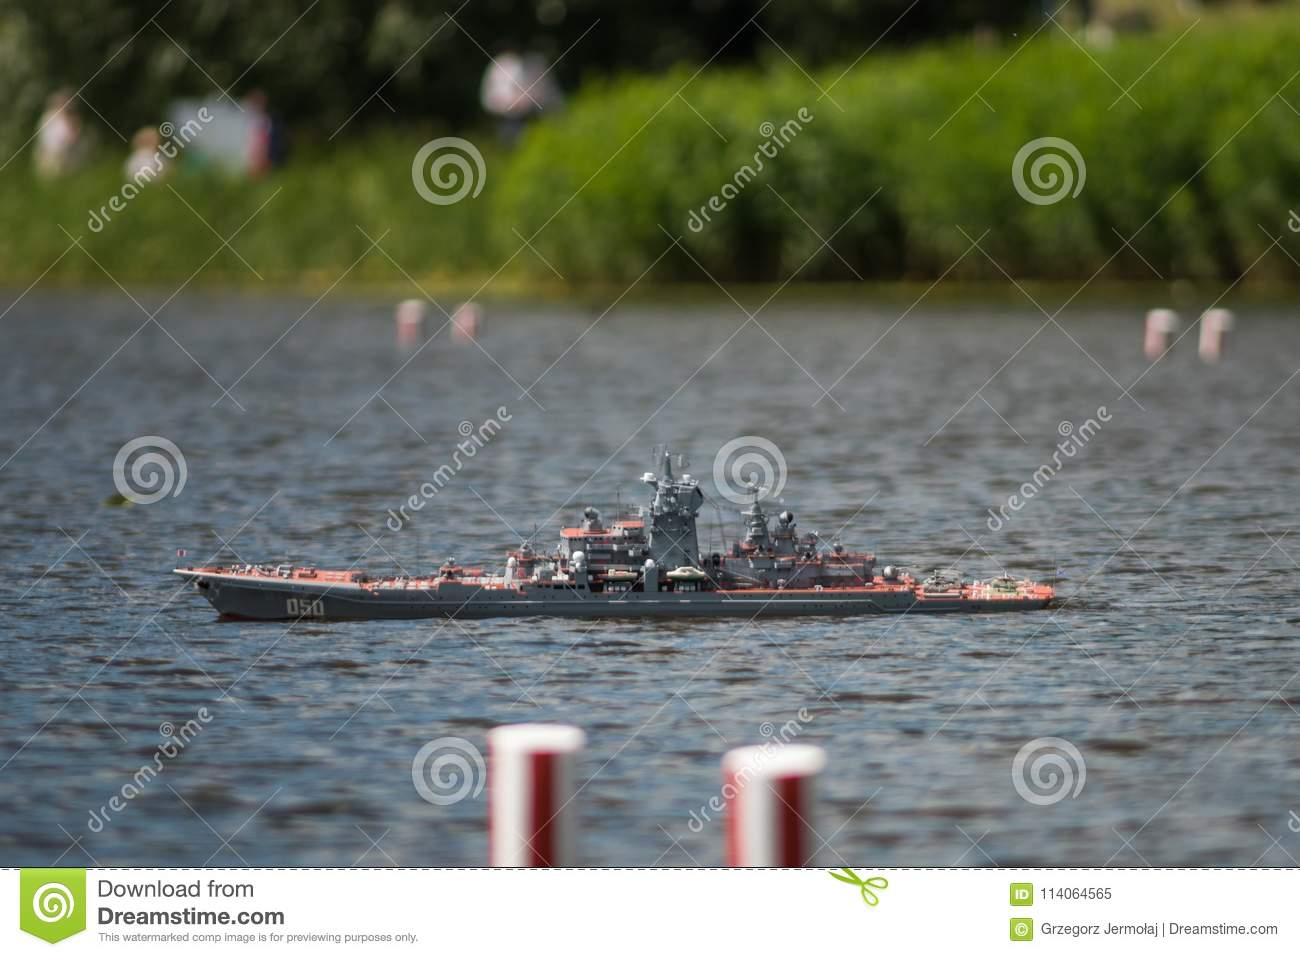 Remote-control Scale Warship At Competitions  Editorial Image